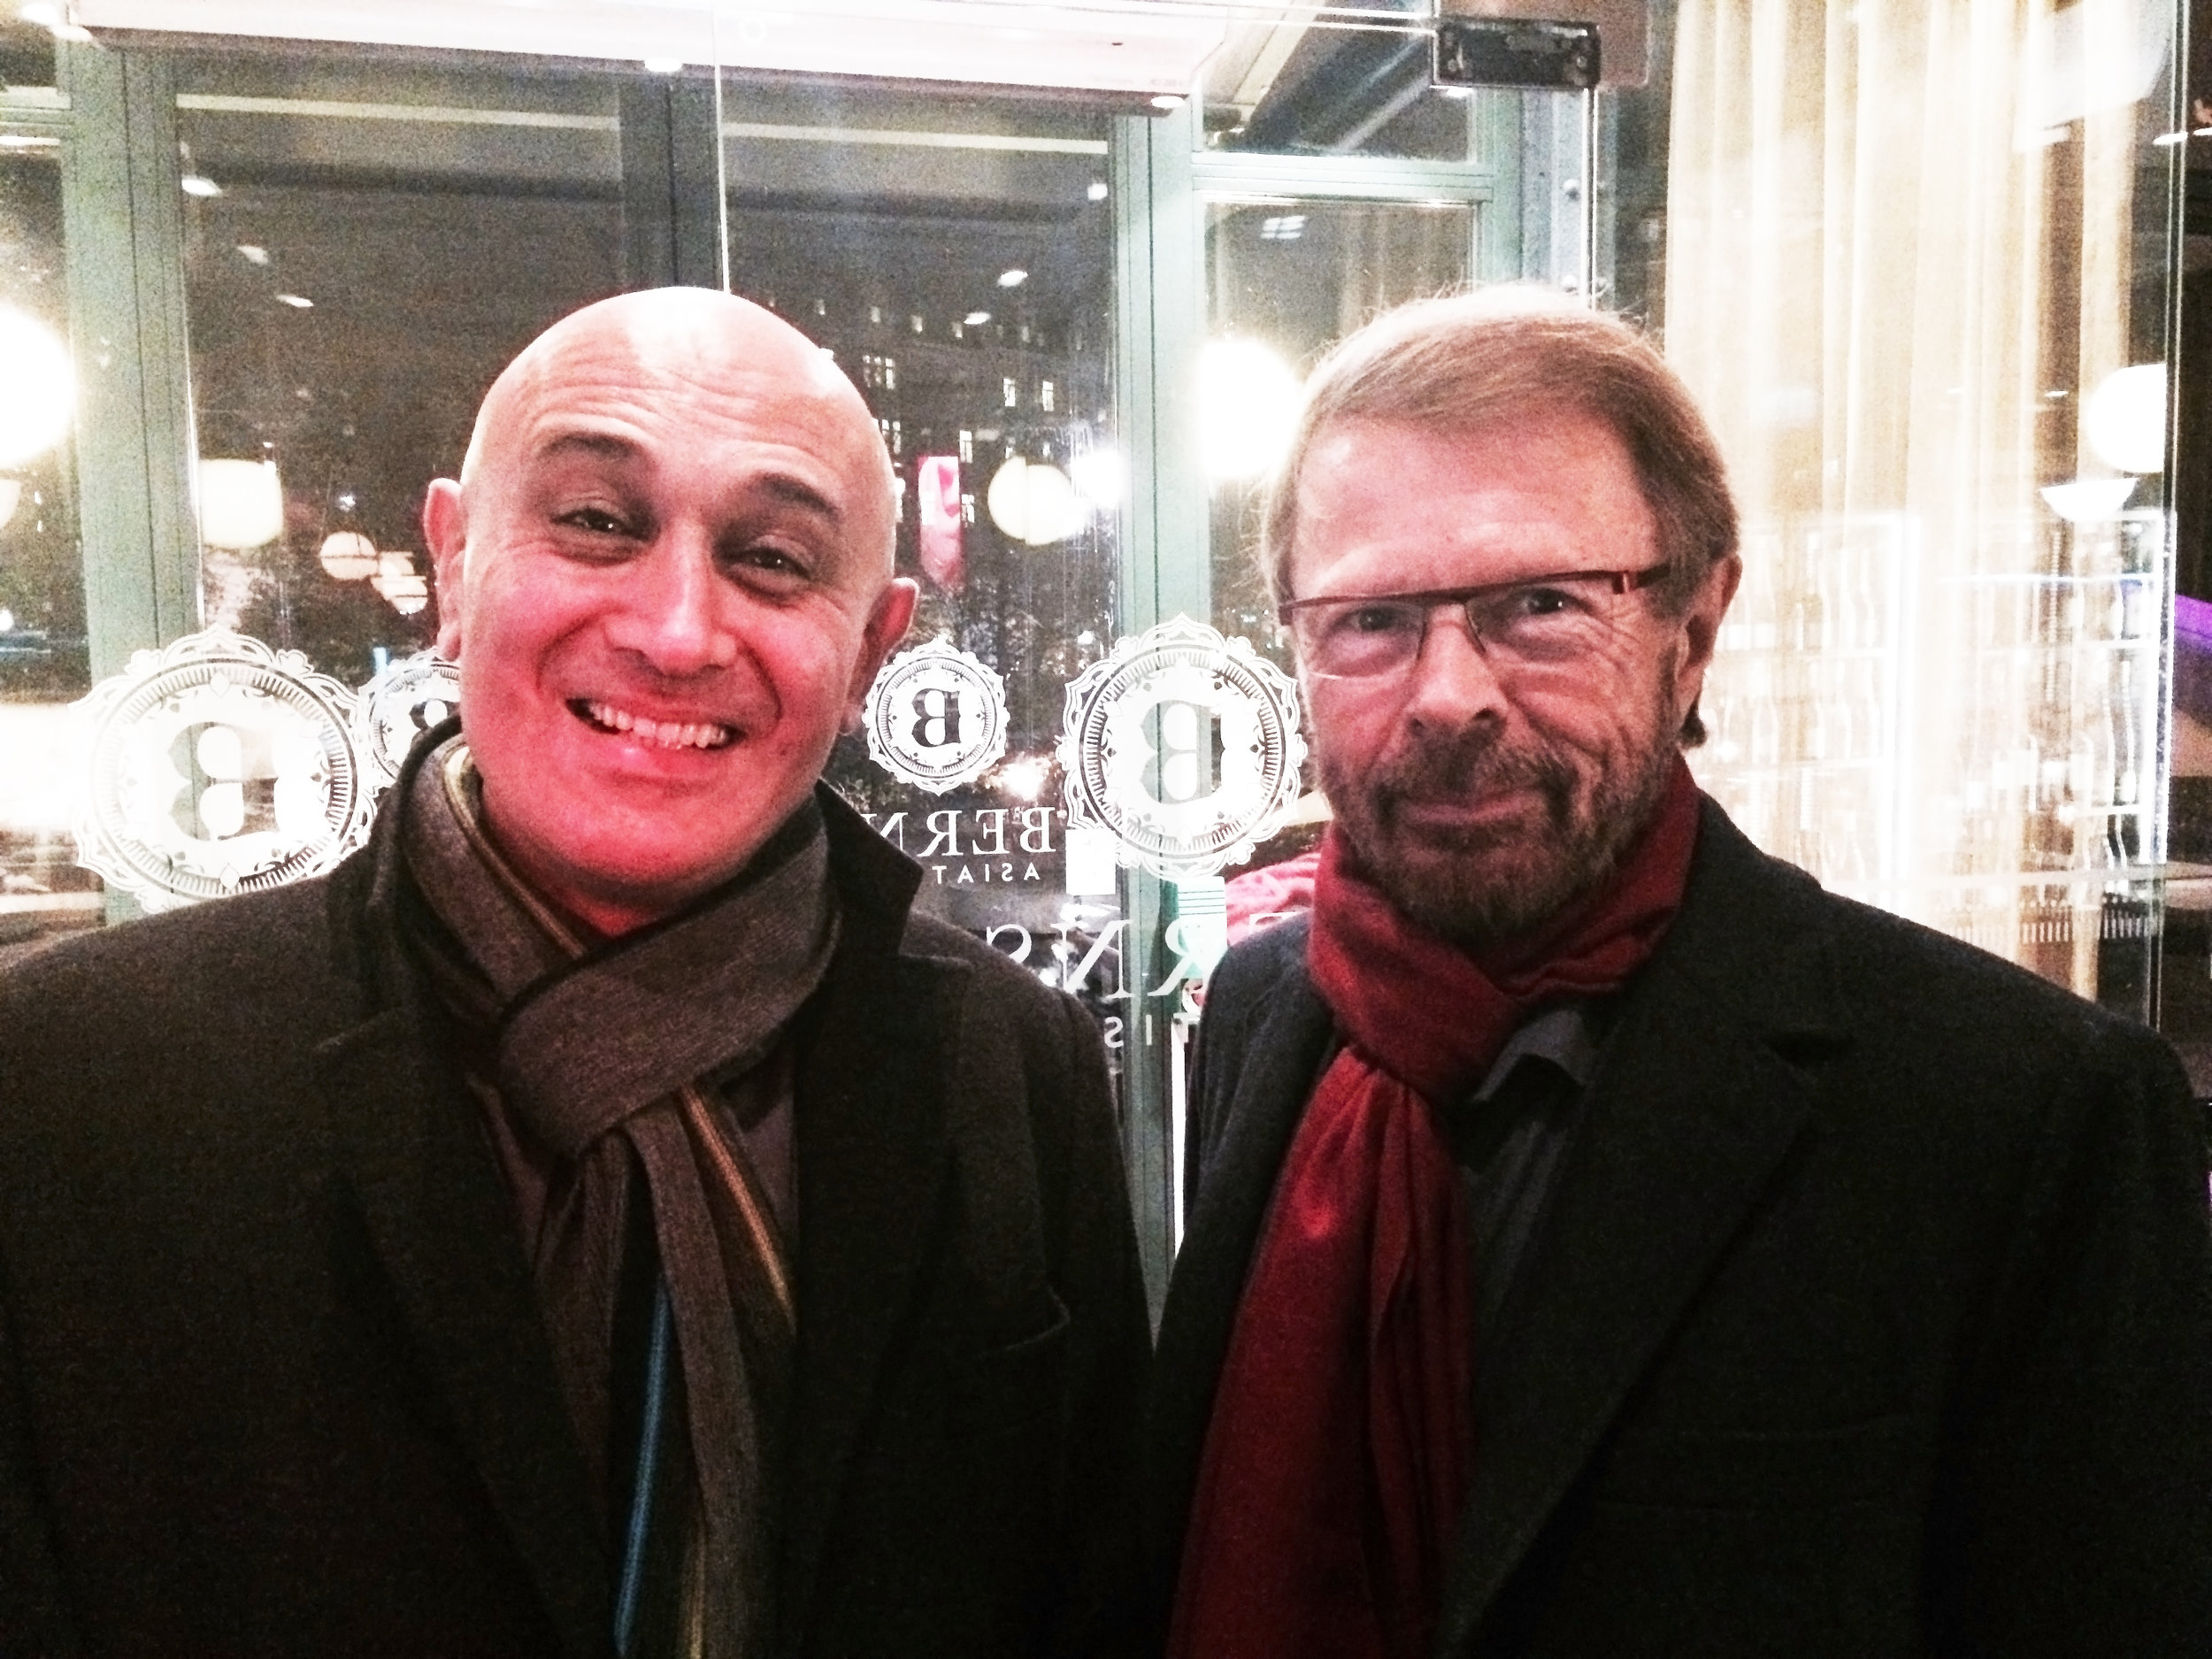 The day I had dinner with Bjorn Ulvaeus – a quite charming man.